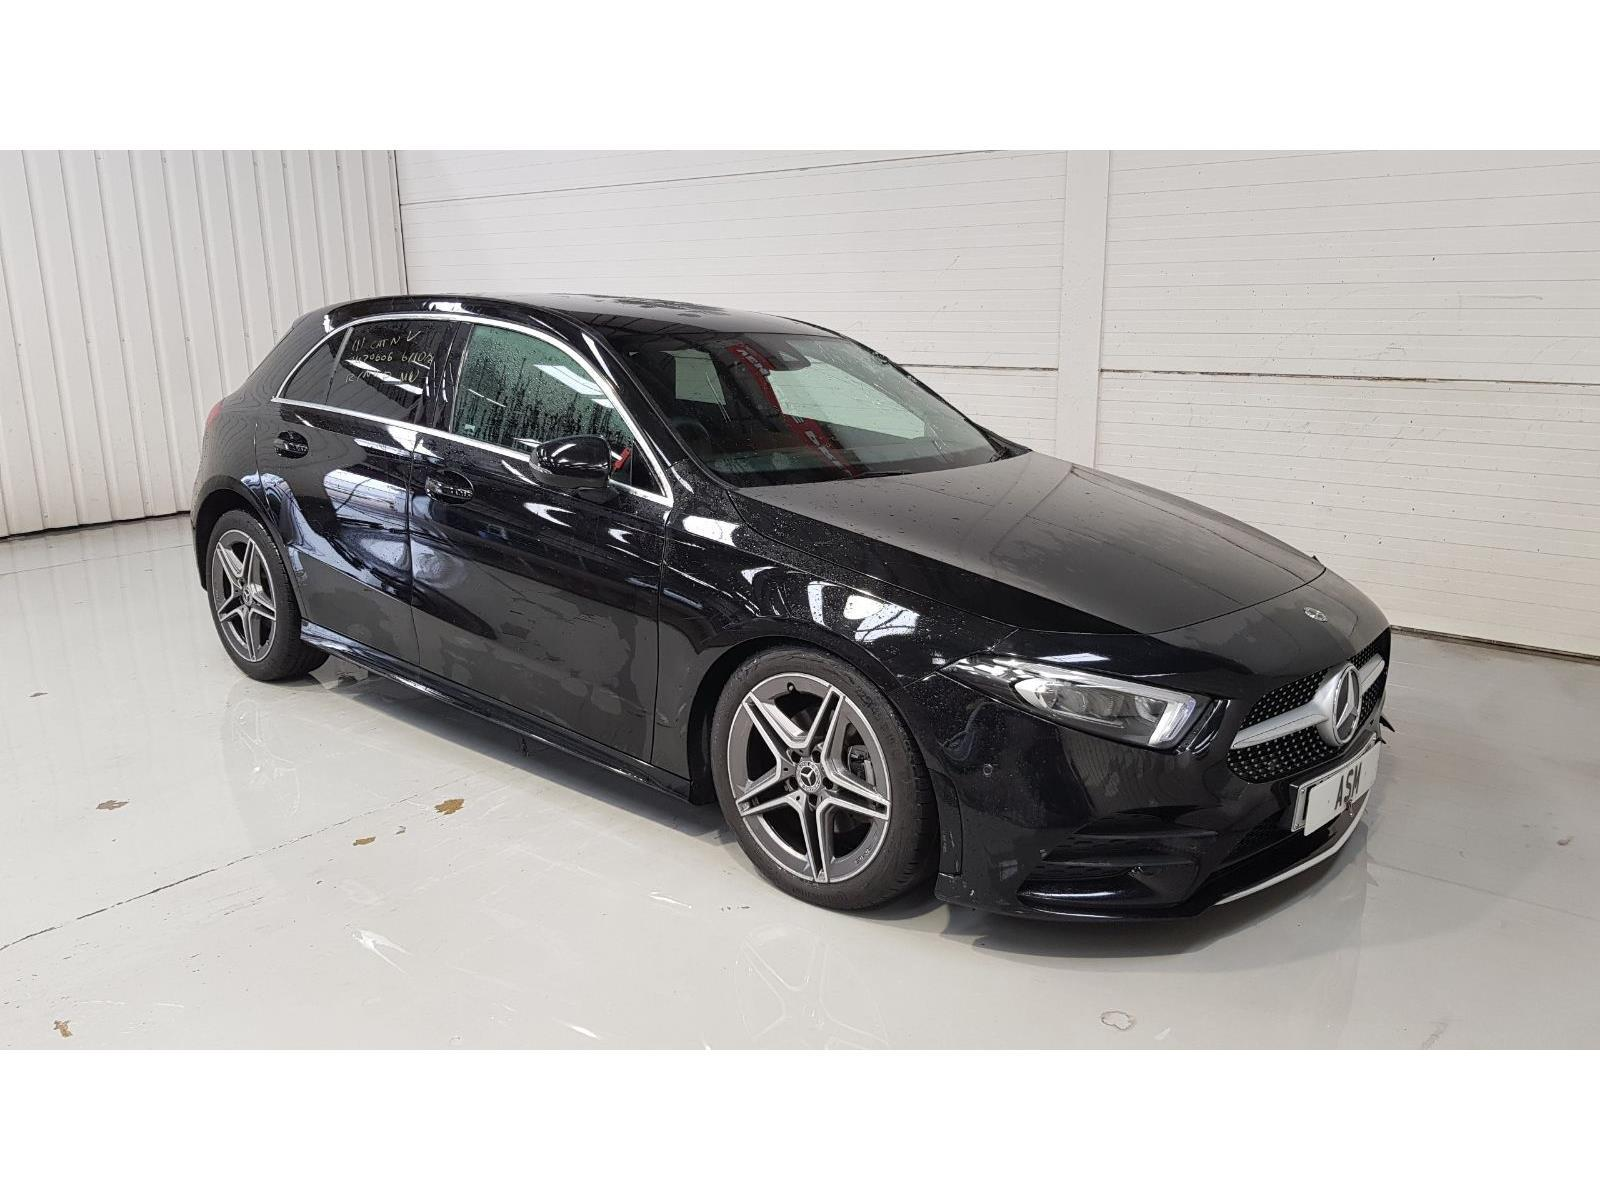 2020 Mercedes-Benz A Class A180 D AMG LINE EXECUTIVE 1461cc Turbo Diesel Automatic 7 Speed 5 Door Hatchback